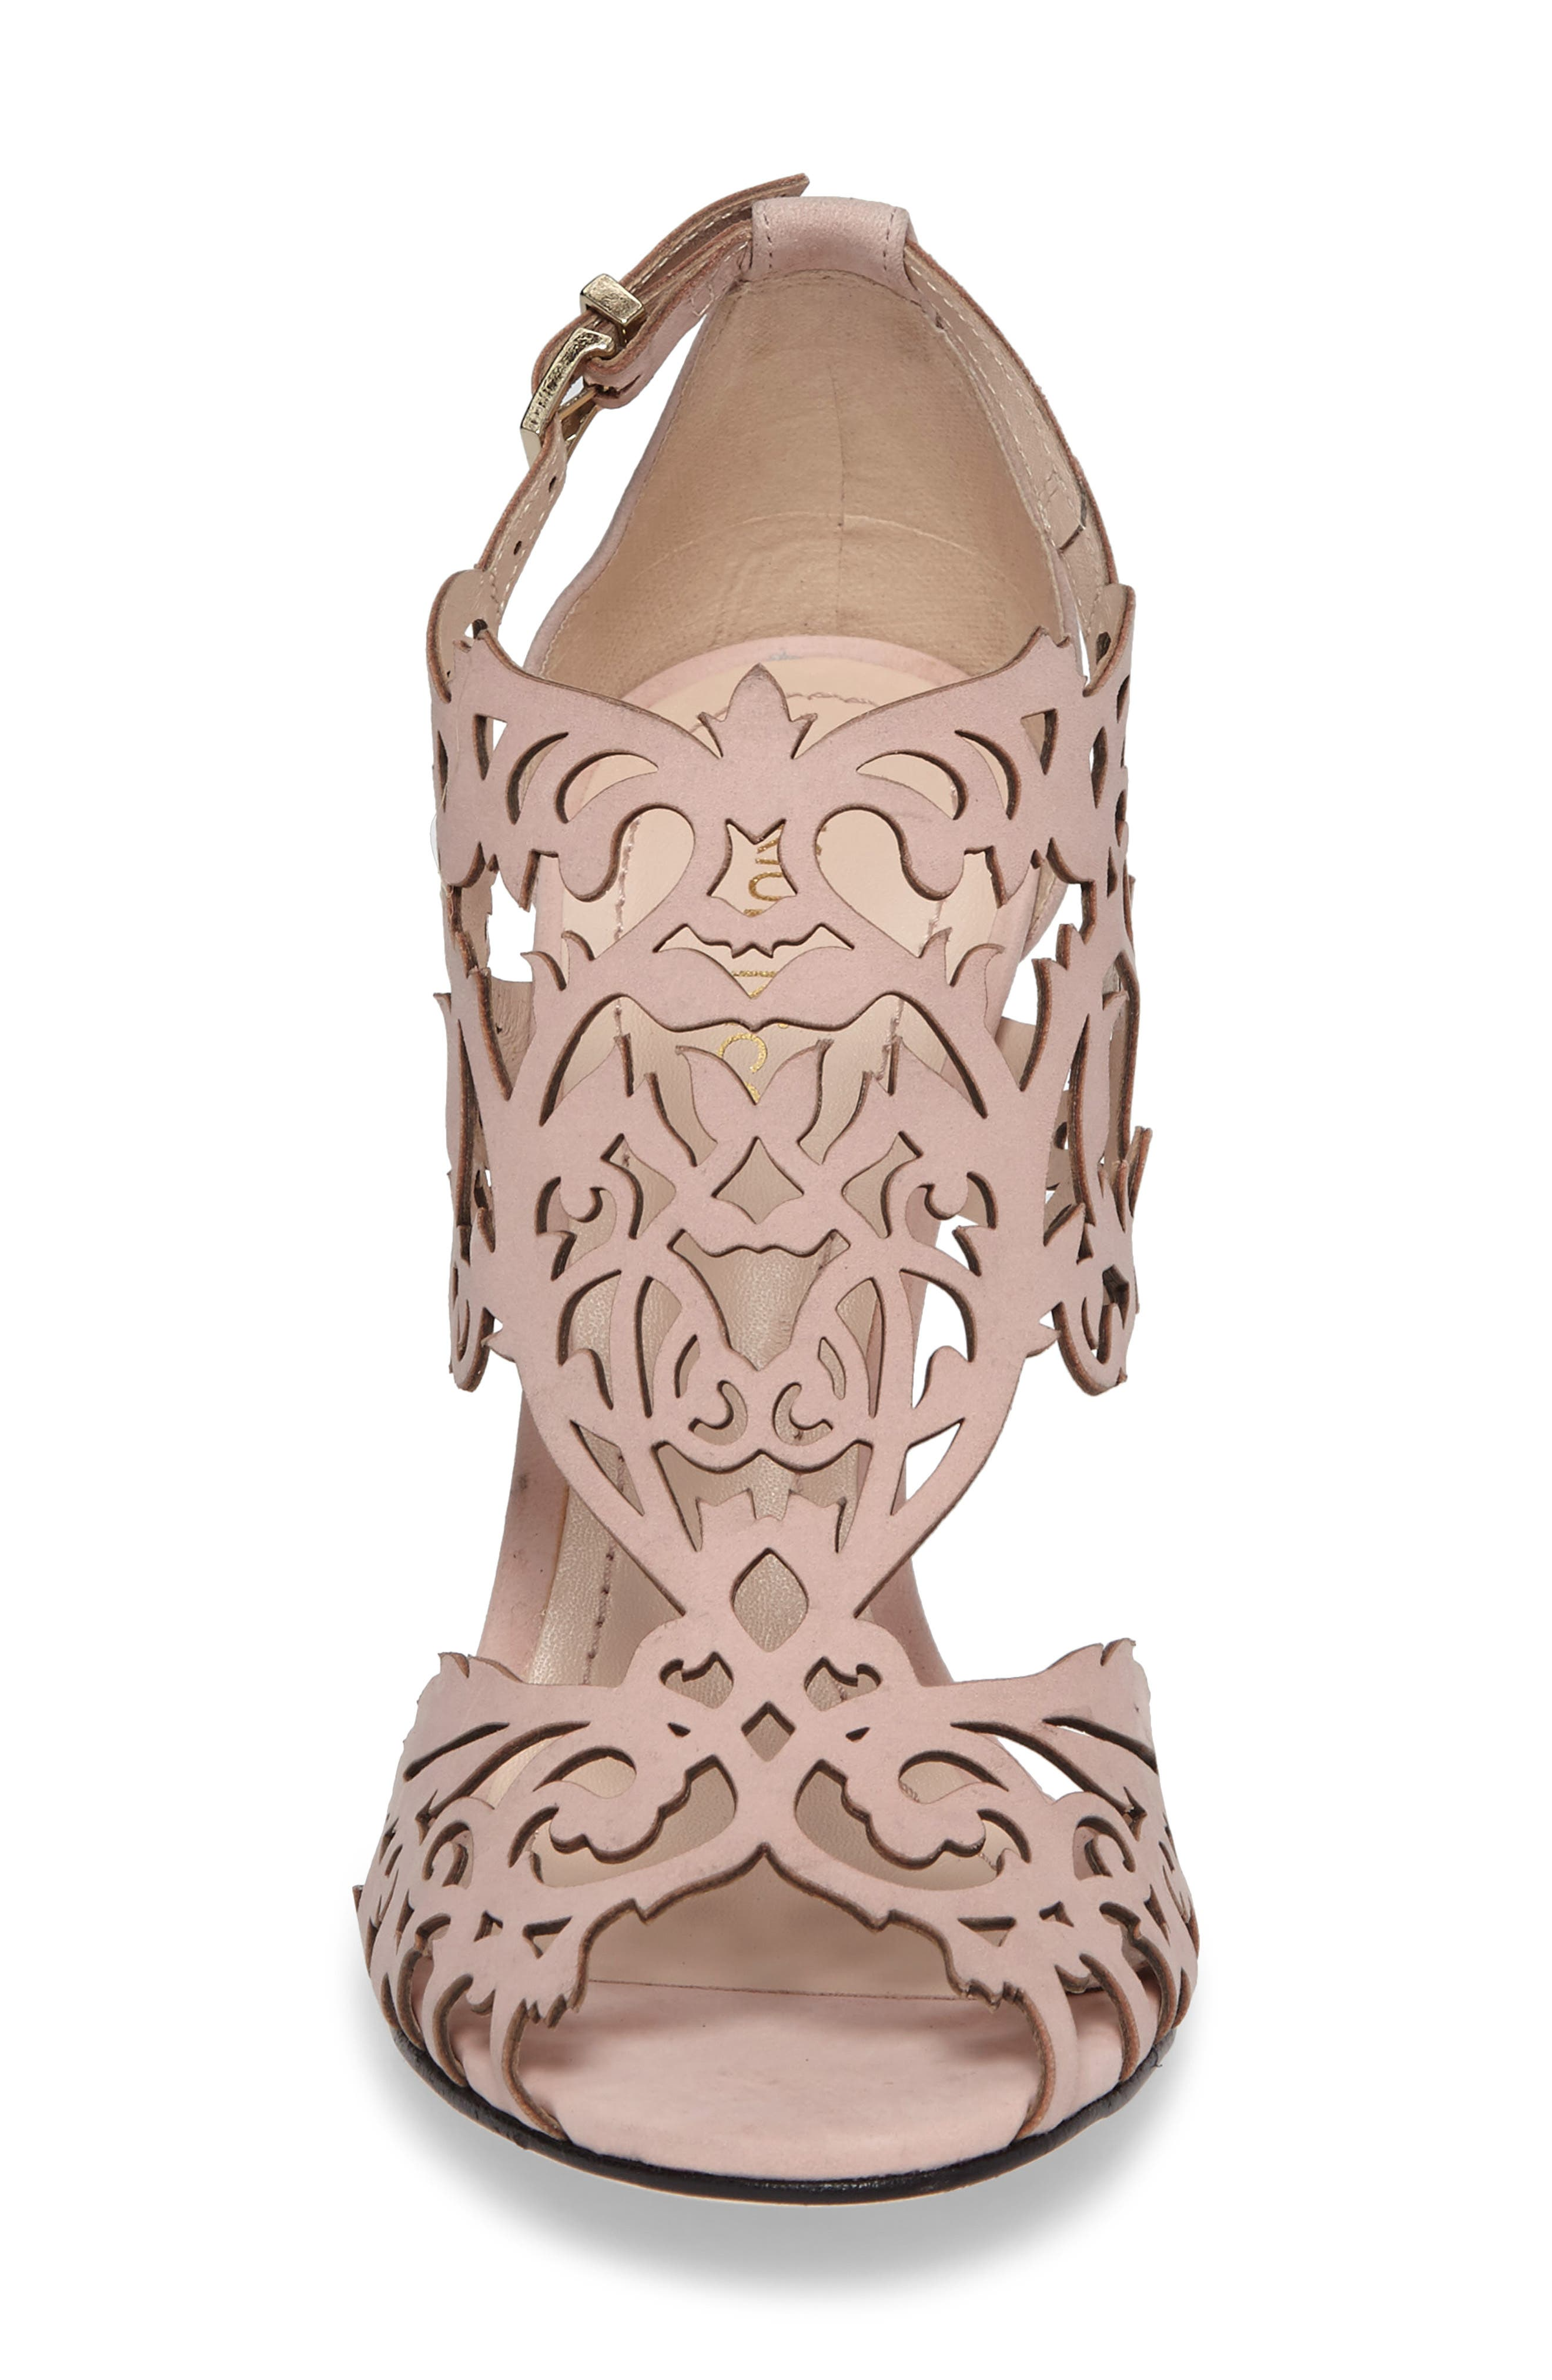 Marcela Laser Cutout Sandal,                             Alternate thumbnail 4, color,                             Blush Nubuck Leather